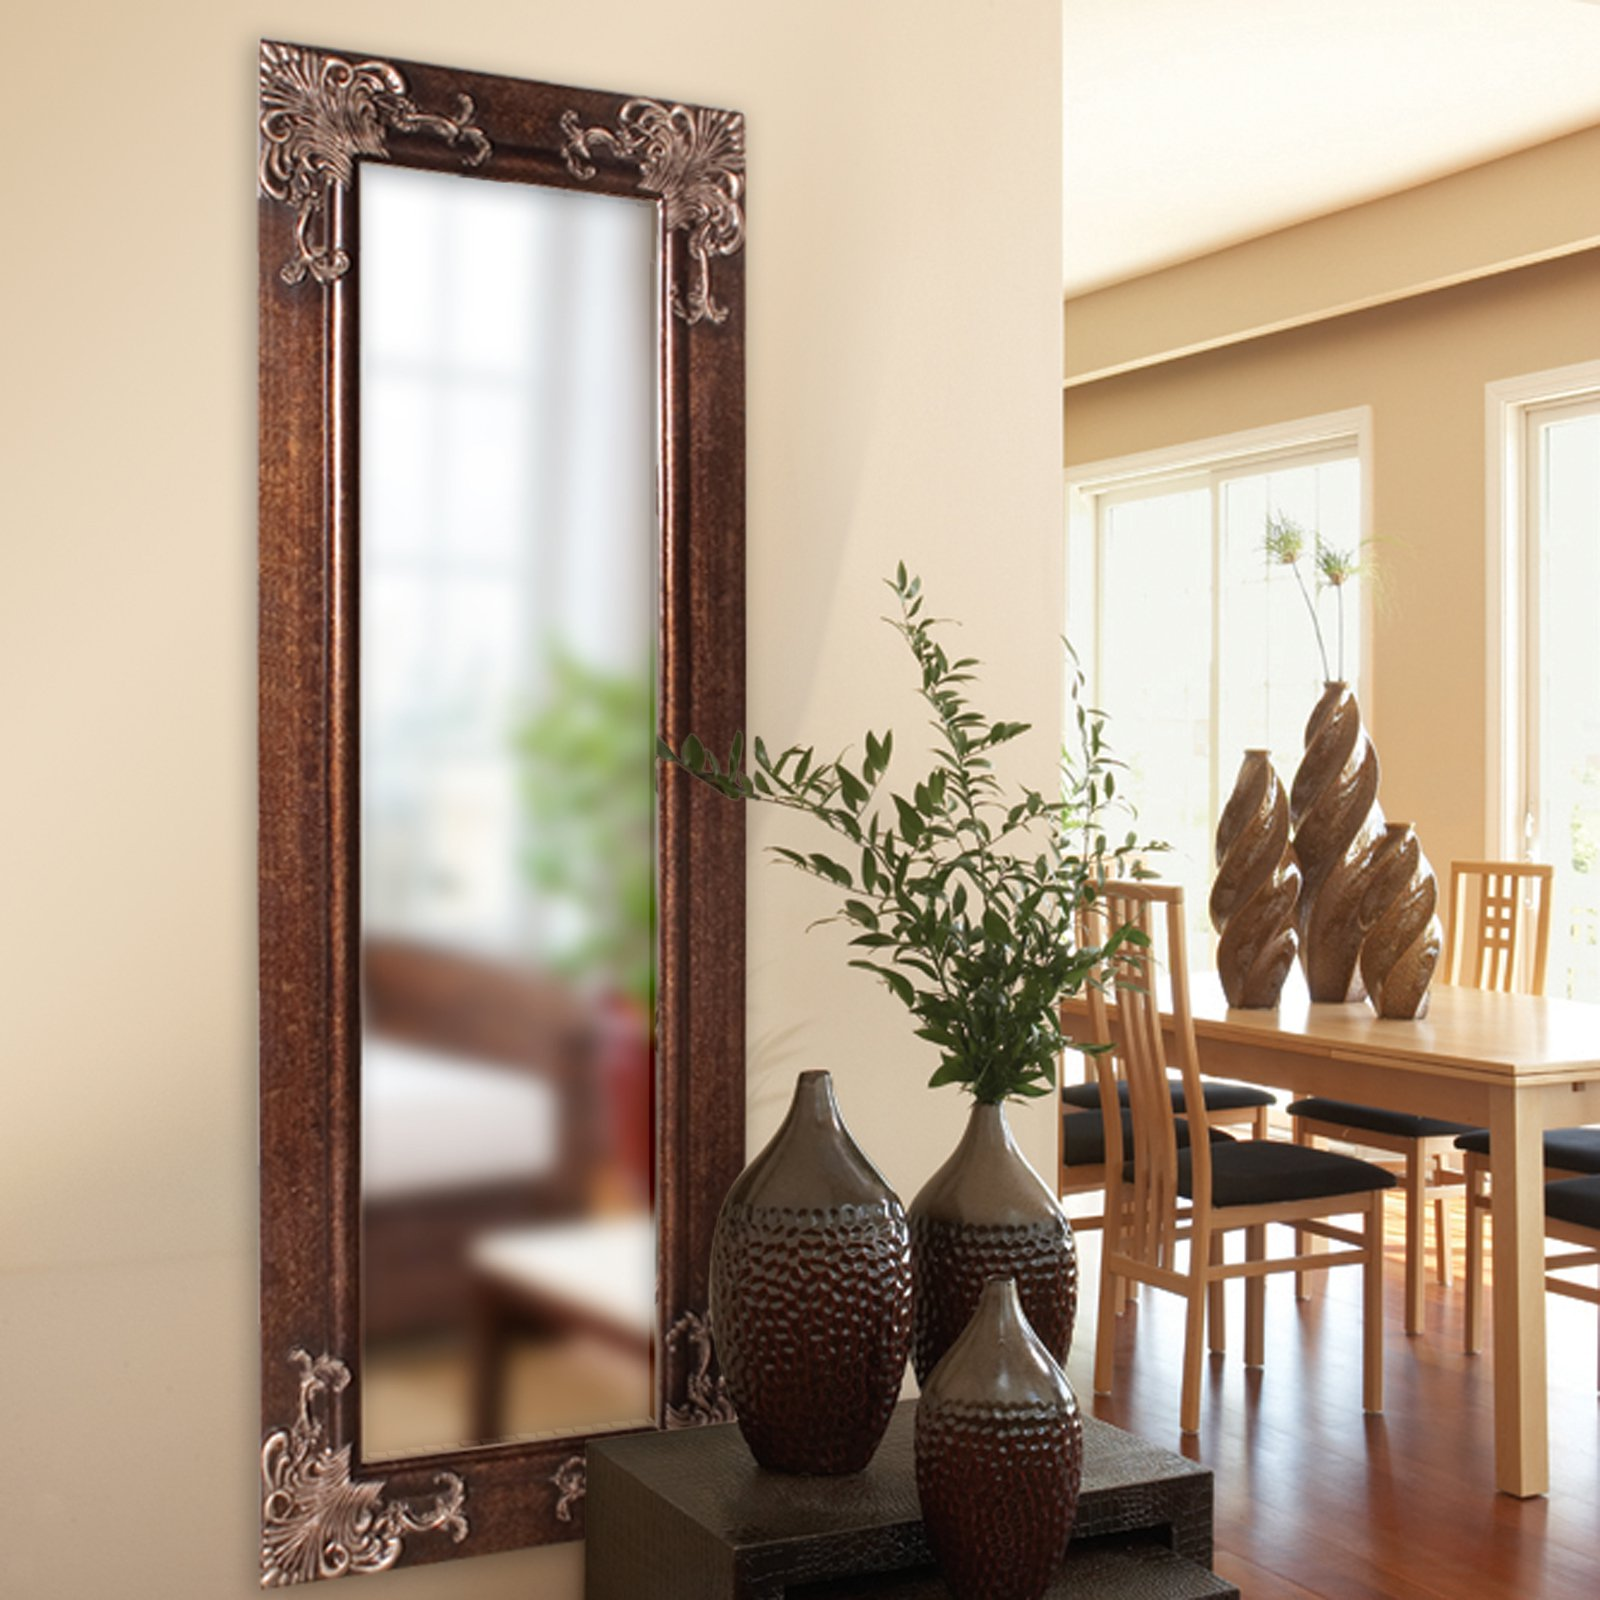 full length wall mirror Belham Living Ashburn Full Length Wall Mirror   24W x 63H in  full length wall mirror